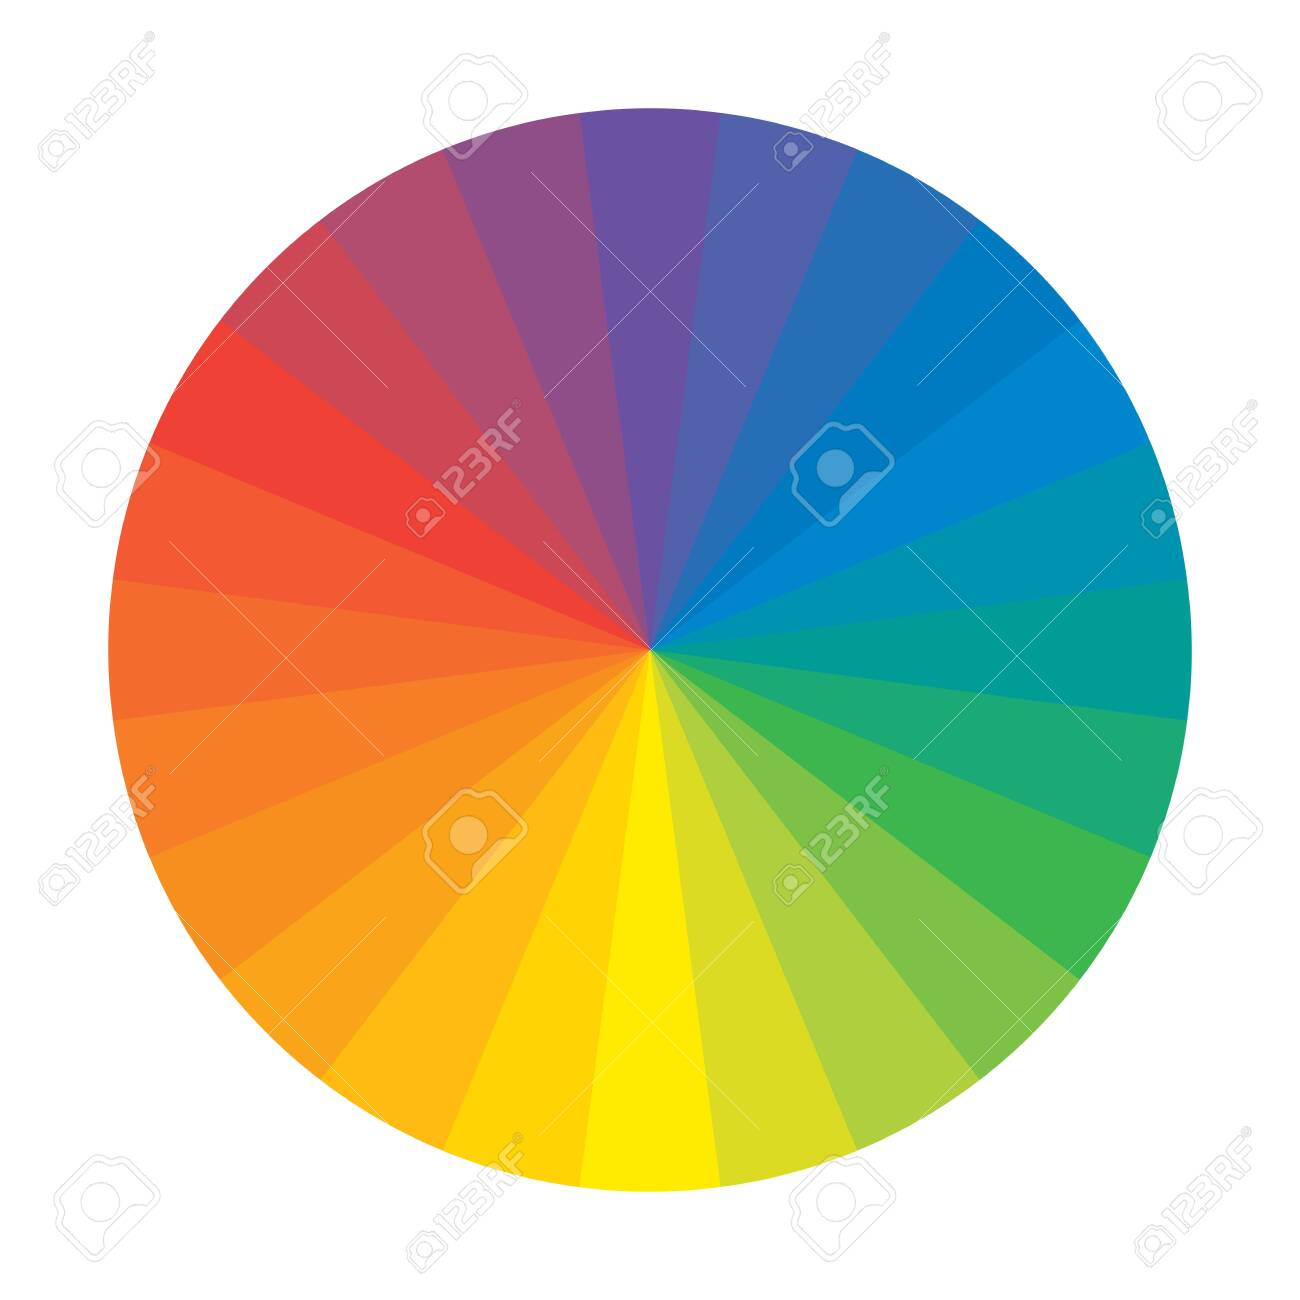 Spectral Rainbow Circle of 24 Multicolor Polychrome Segments. The spectral harmonic colorful palette of the painter. - 130453709